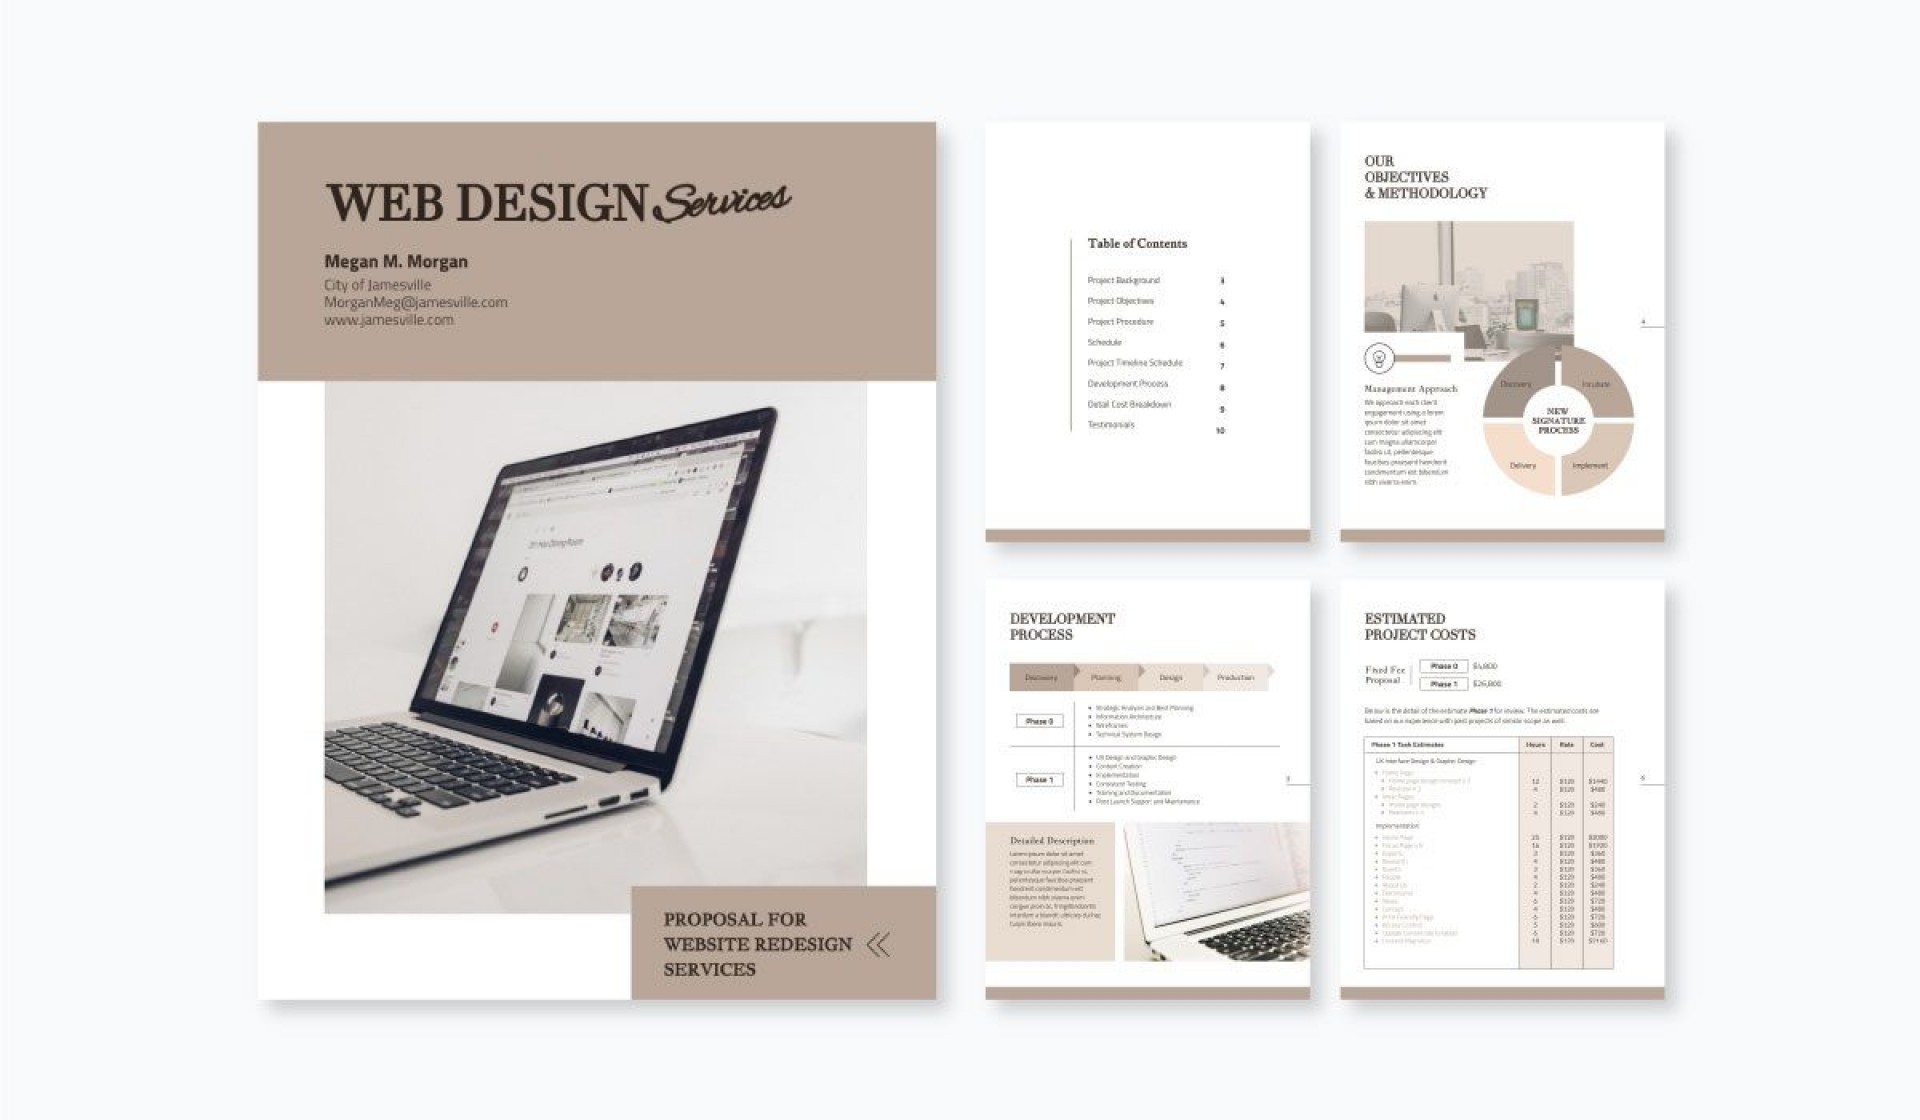 002 Incredible Web Design Proposal Template Free Download High Def 1920